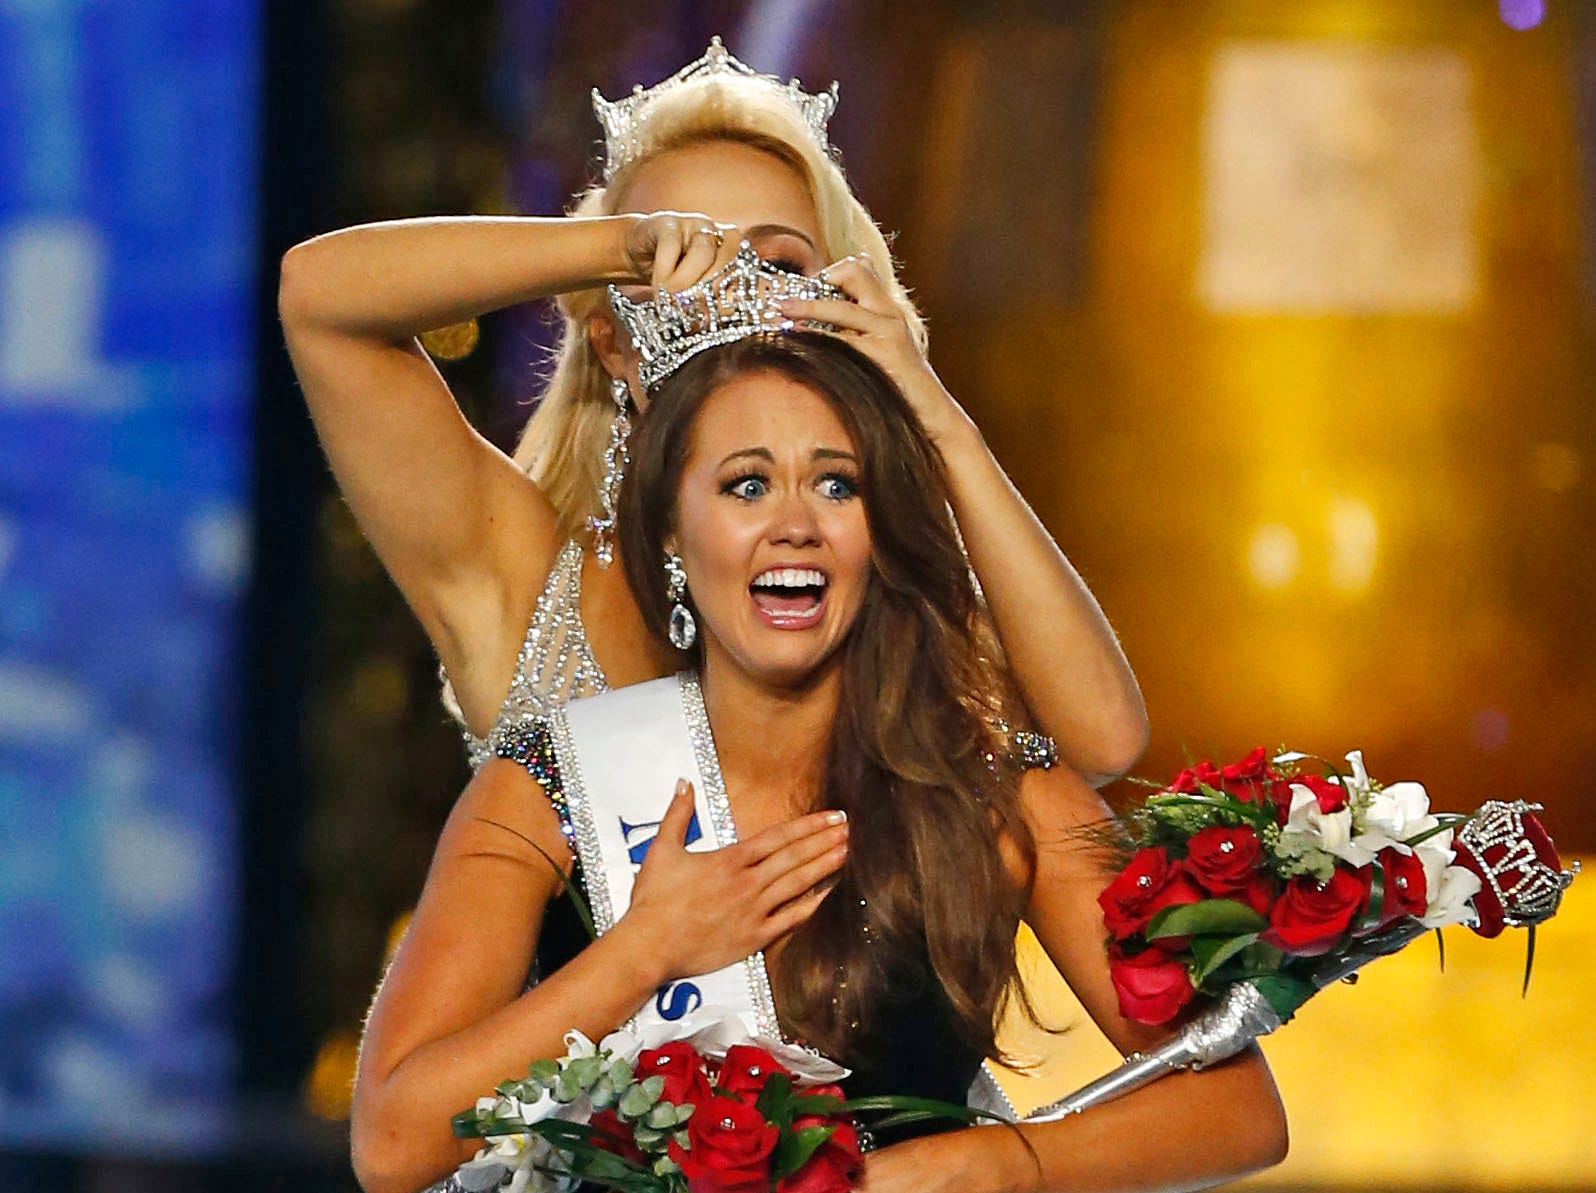 FILE – In this Sept. 10, 2017, file photo, Miss North Dakota Cara Mund reacts after being named Miss America during the Miss America 2018 pageant in Atlantic City, N.J. In a letter sent to former Miss Americas on Friday, Aug. 17, 2018, Mund says she has been bullied, manipulated and silenced by the pageant's current leadership, including chairwoman Gretchen Carlson. (AP Photo/Noah K. Murray, File) ORG XMIT: NJPX201